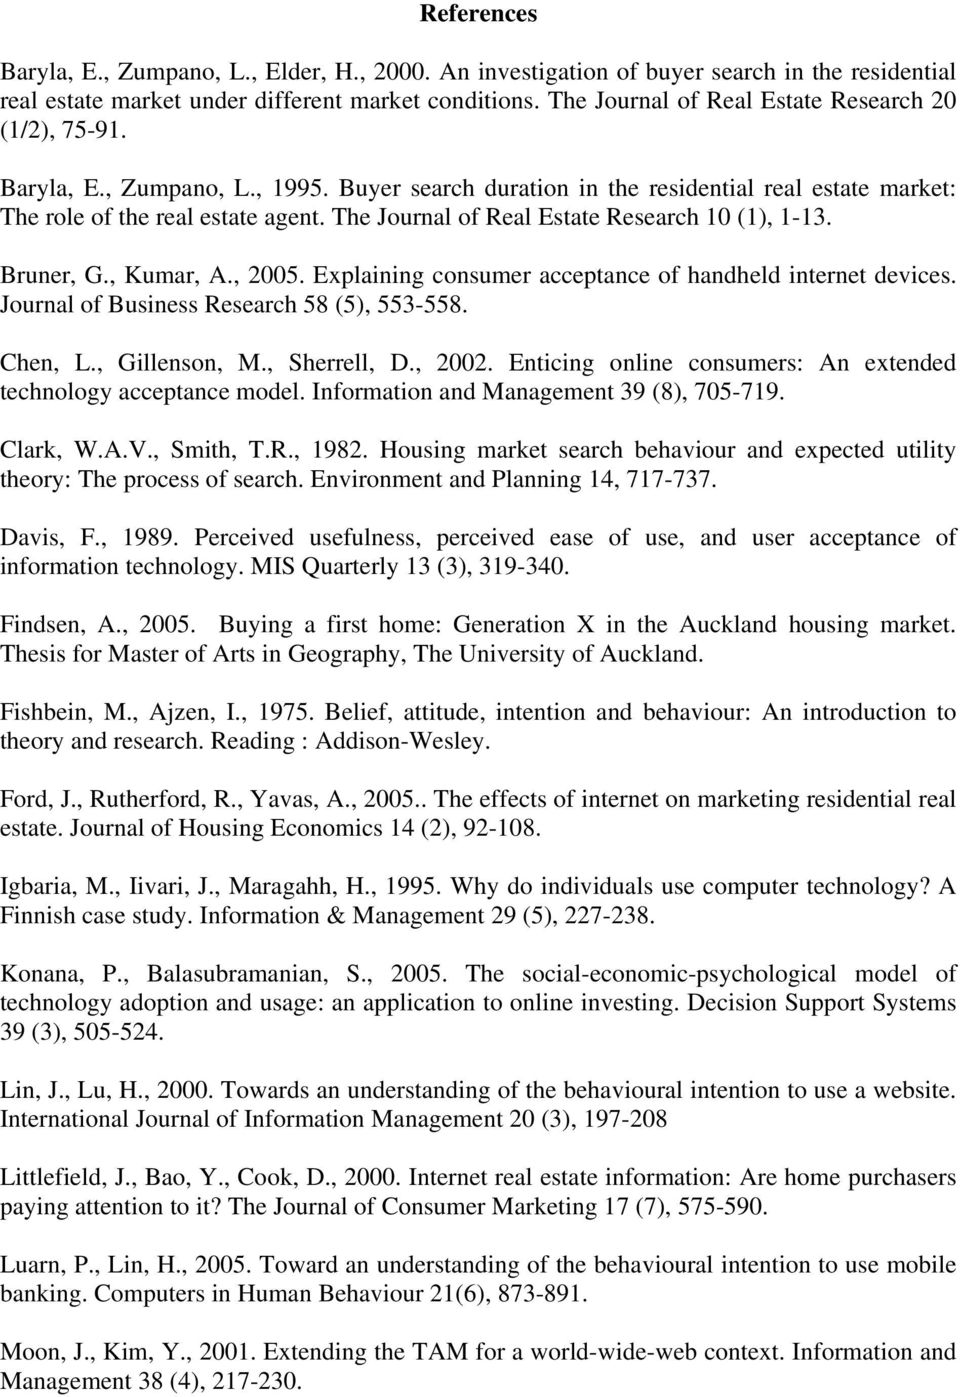 The Journal of Real Estate Research 10 (1), 1-13. Bruner, G., Kumar, A., 2005. Explaining consumer acceptance of handheld internet devices. Journal of Business Research 58 (5), 553-558. Chen, L.